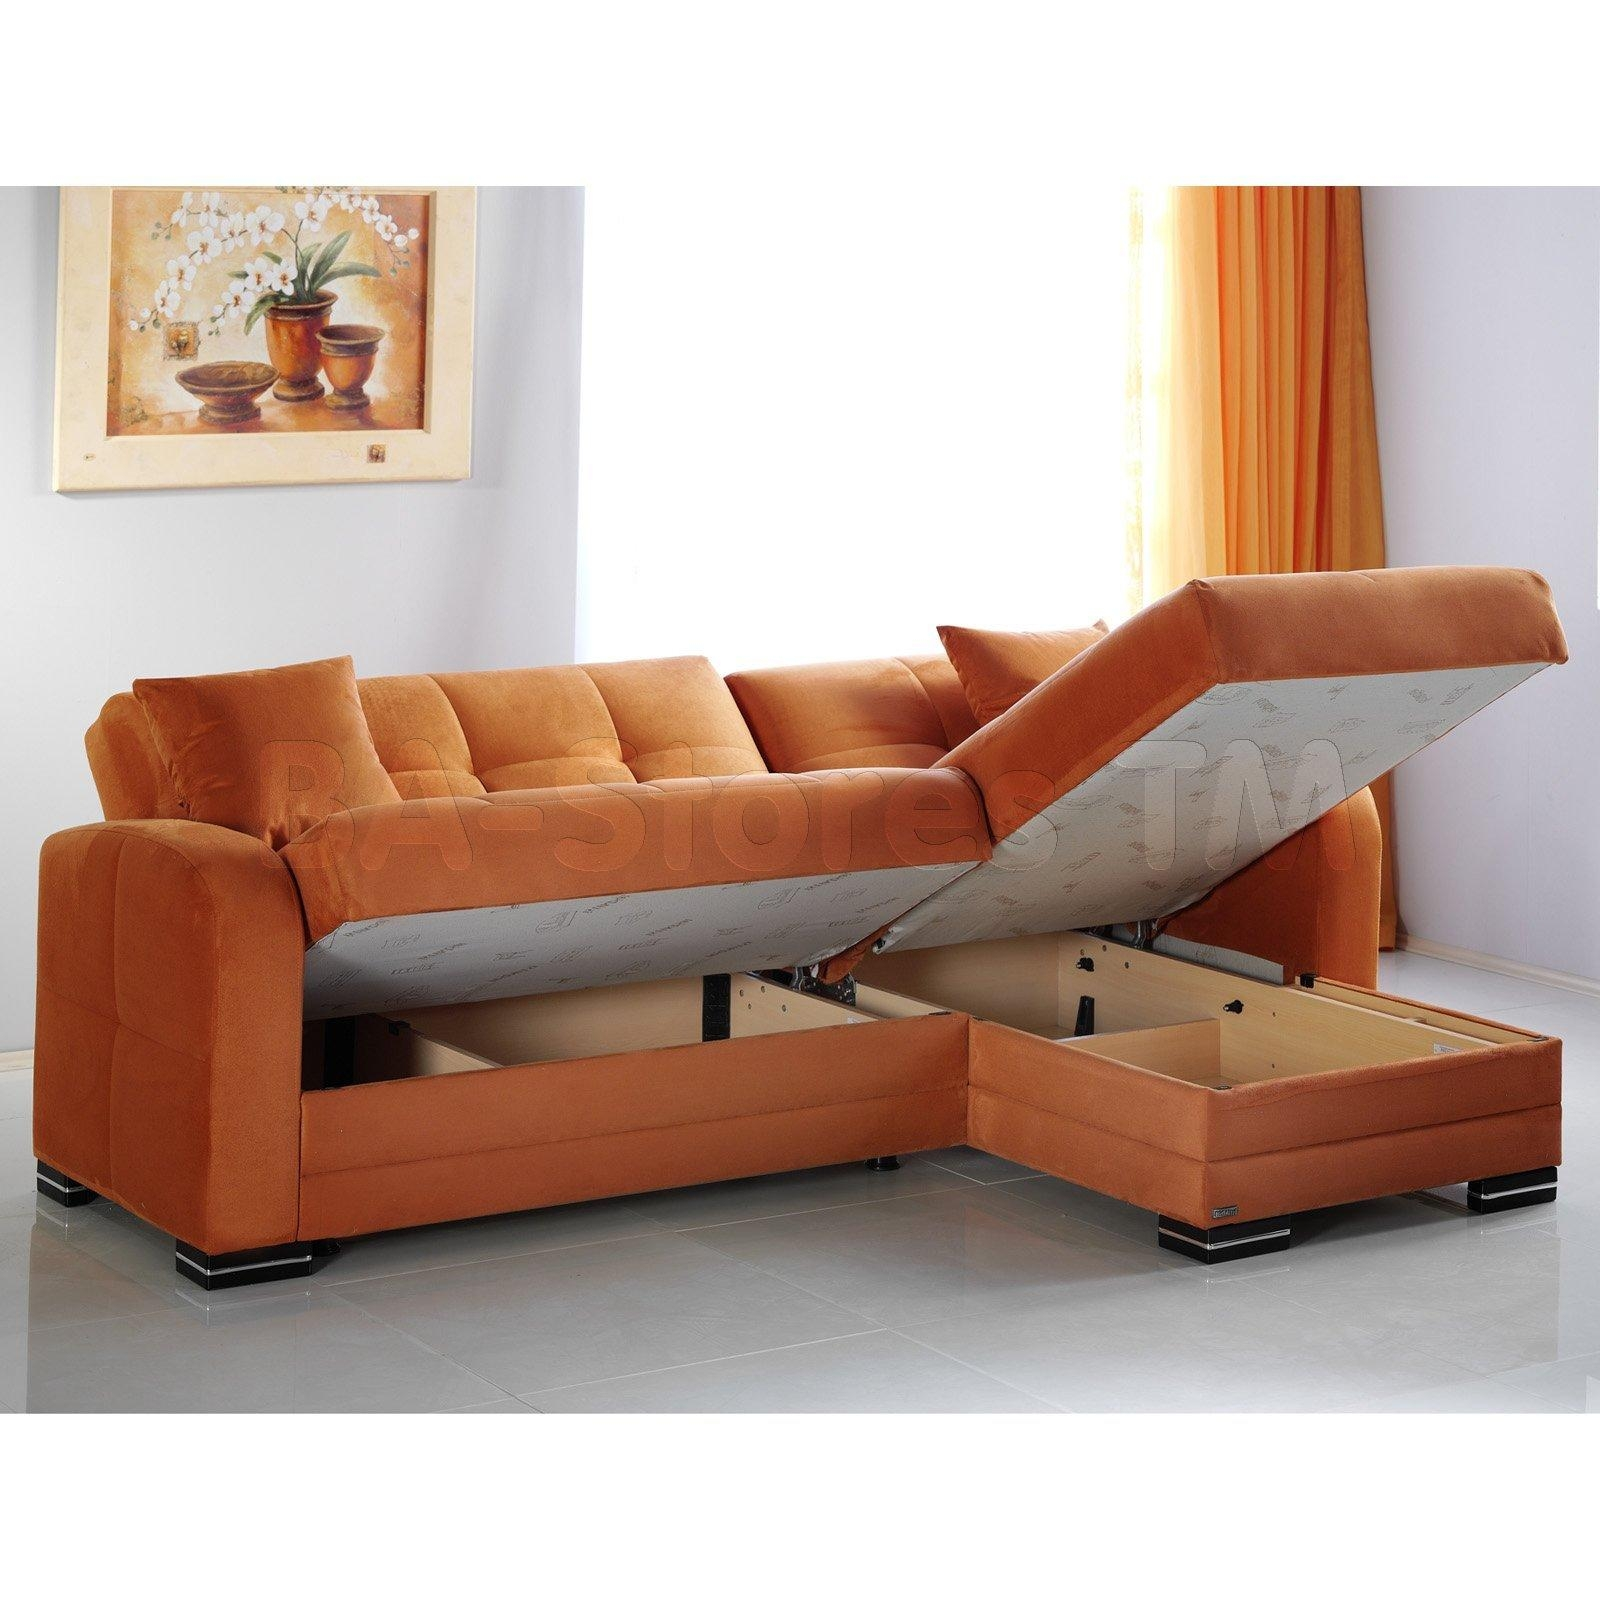 Burnt Orange Leather Sofa With Design Ideas 16541 | Kengire Within Burnt Orange Leather Sofas (Image 3 of 20)